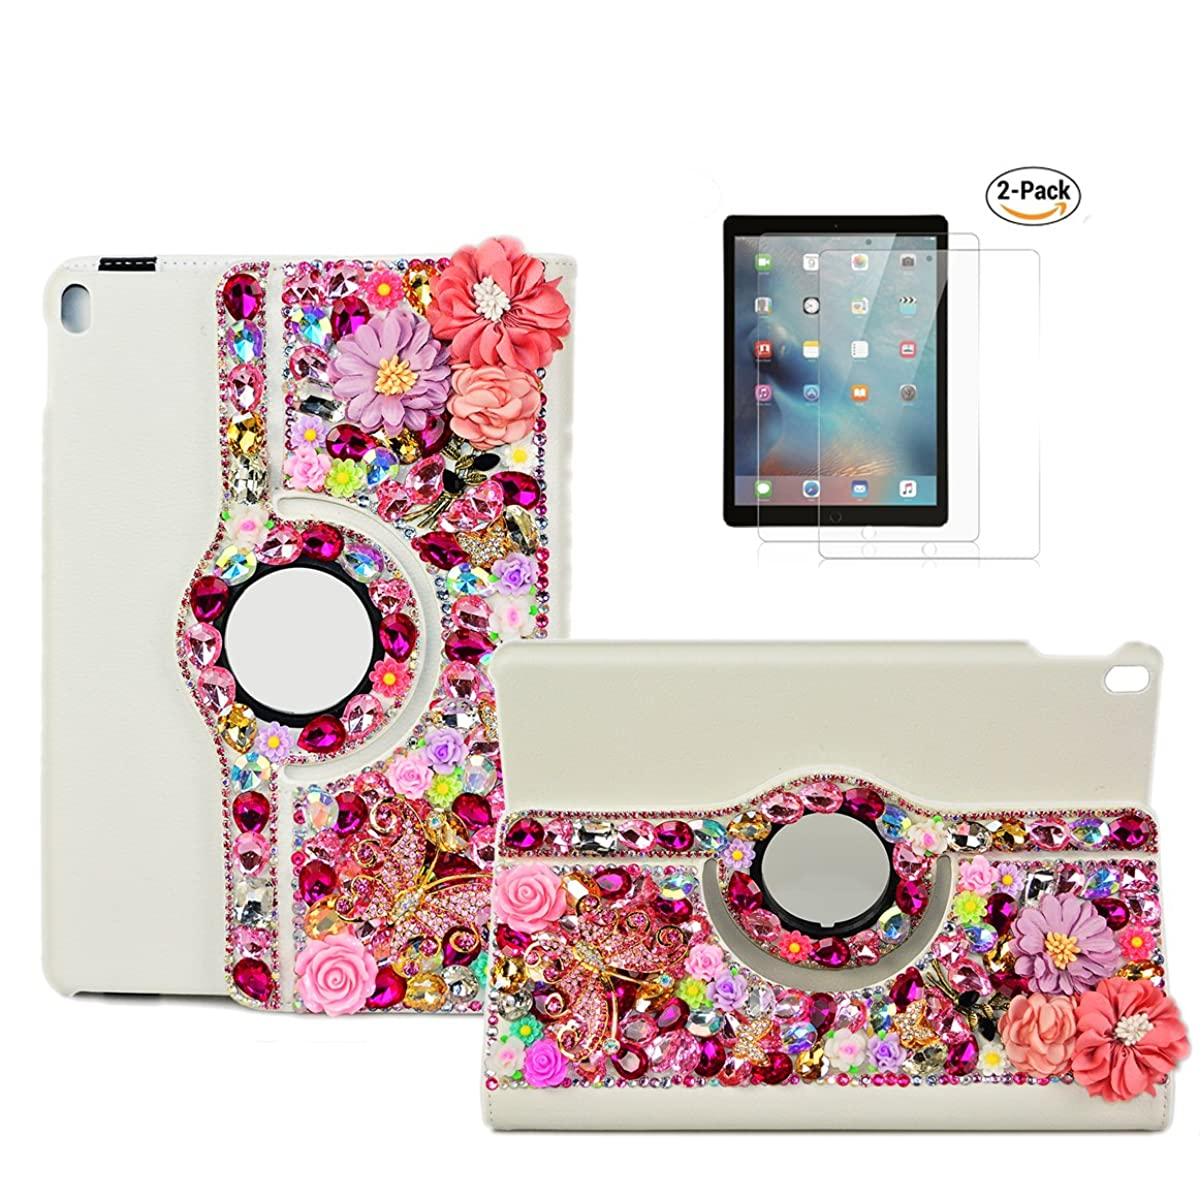 STENES iPad Pro 9.7 Case - STYLISH - 3D Handmade Bling Crystal Pretty Flowers Butterfly Rose Floral 360 Degree Rotating Stand Case With Smart Cover Auto Sleep/Wake Feature For iPad Pro 9.7